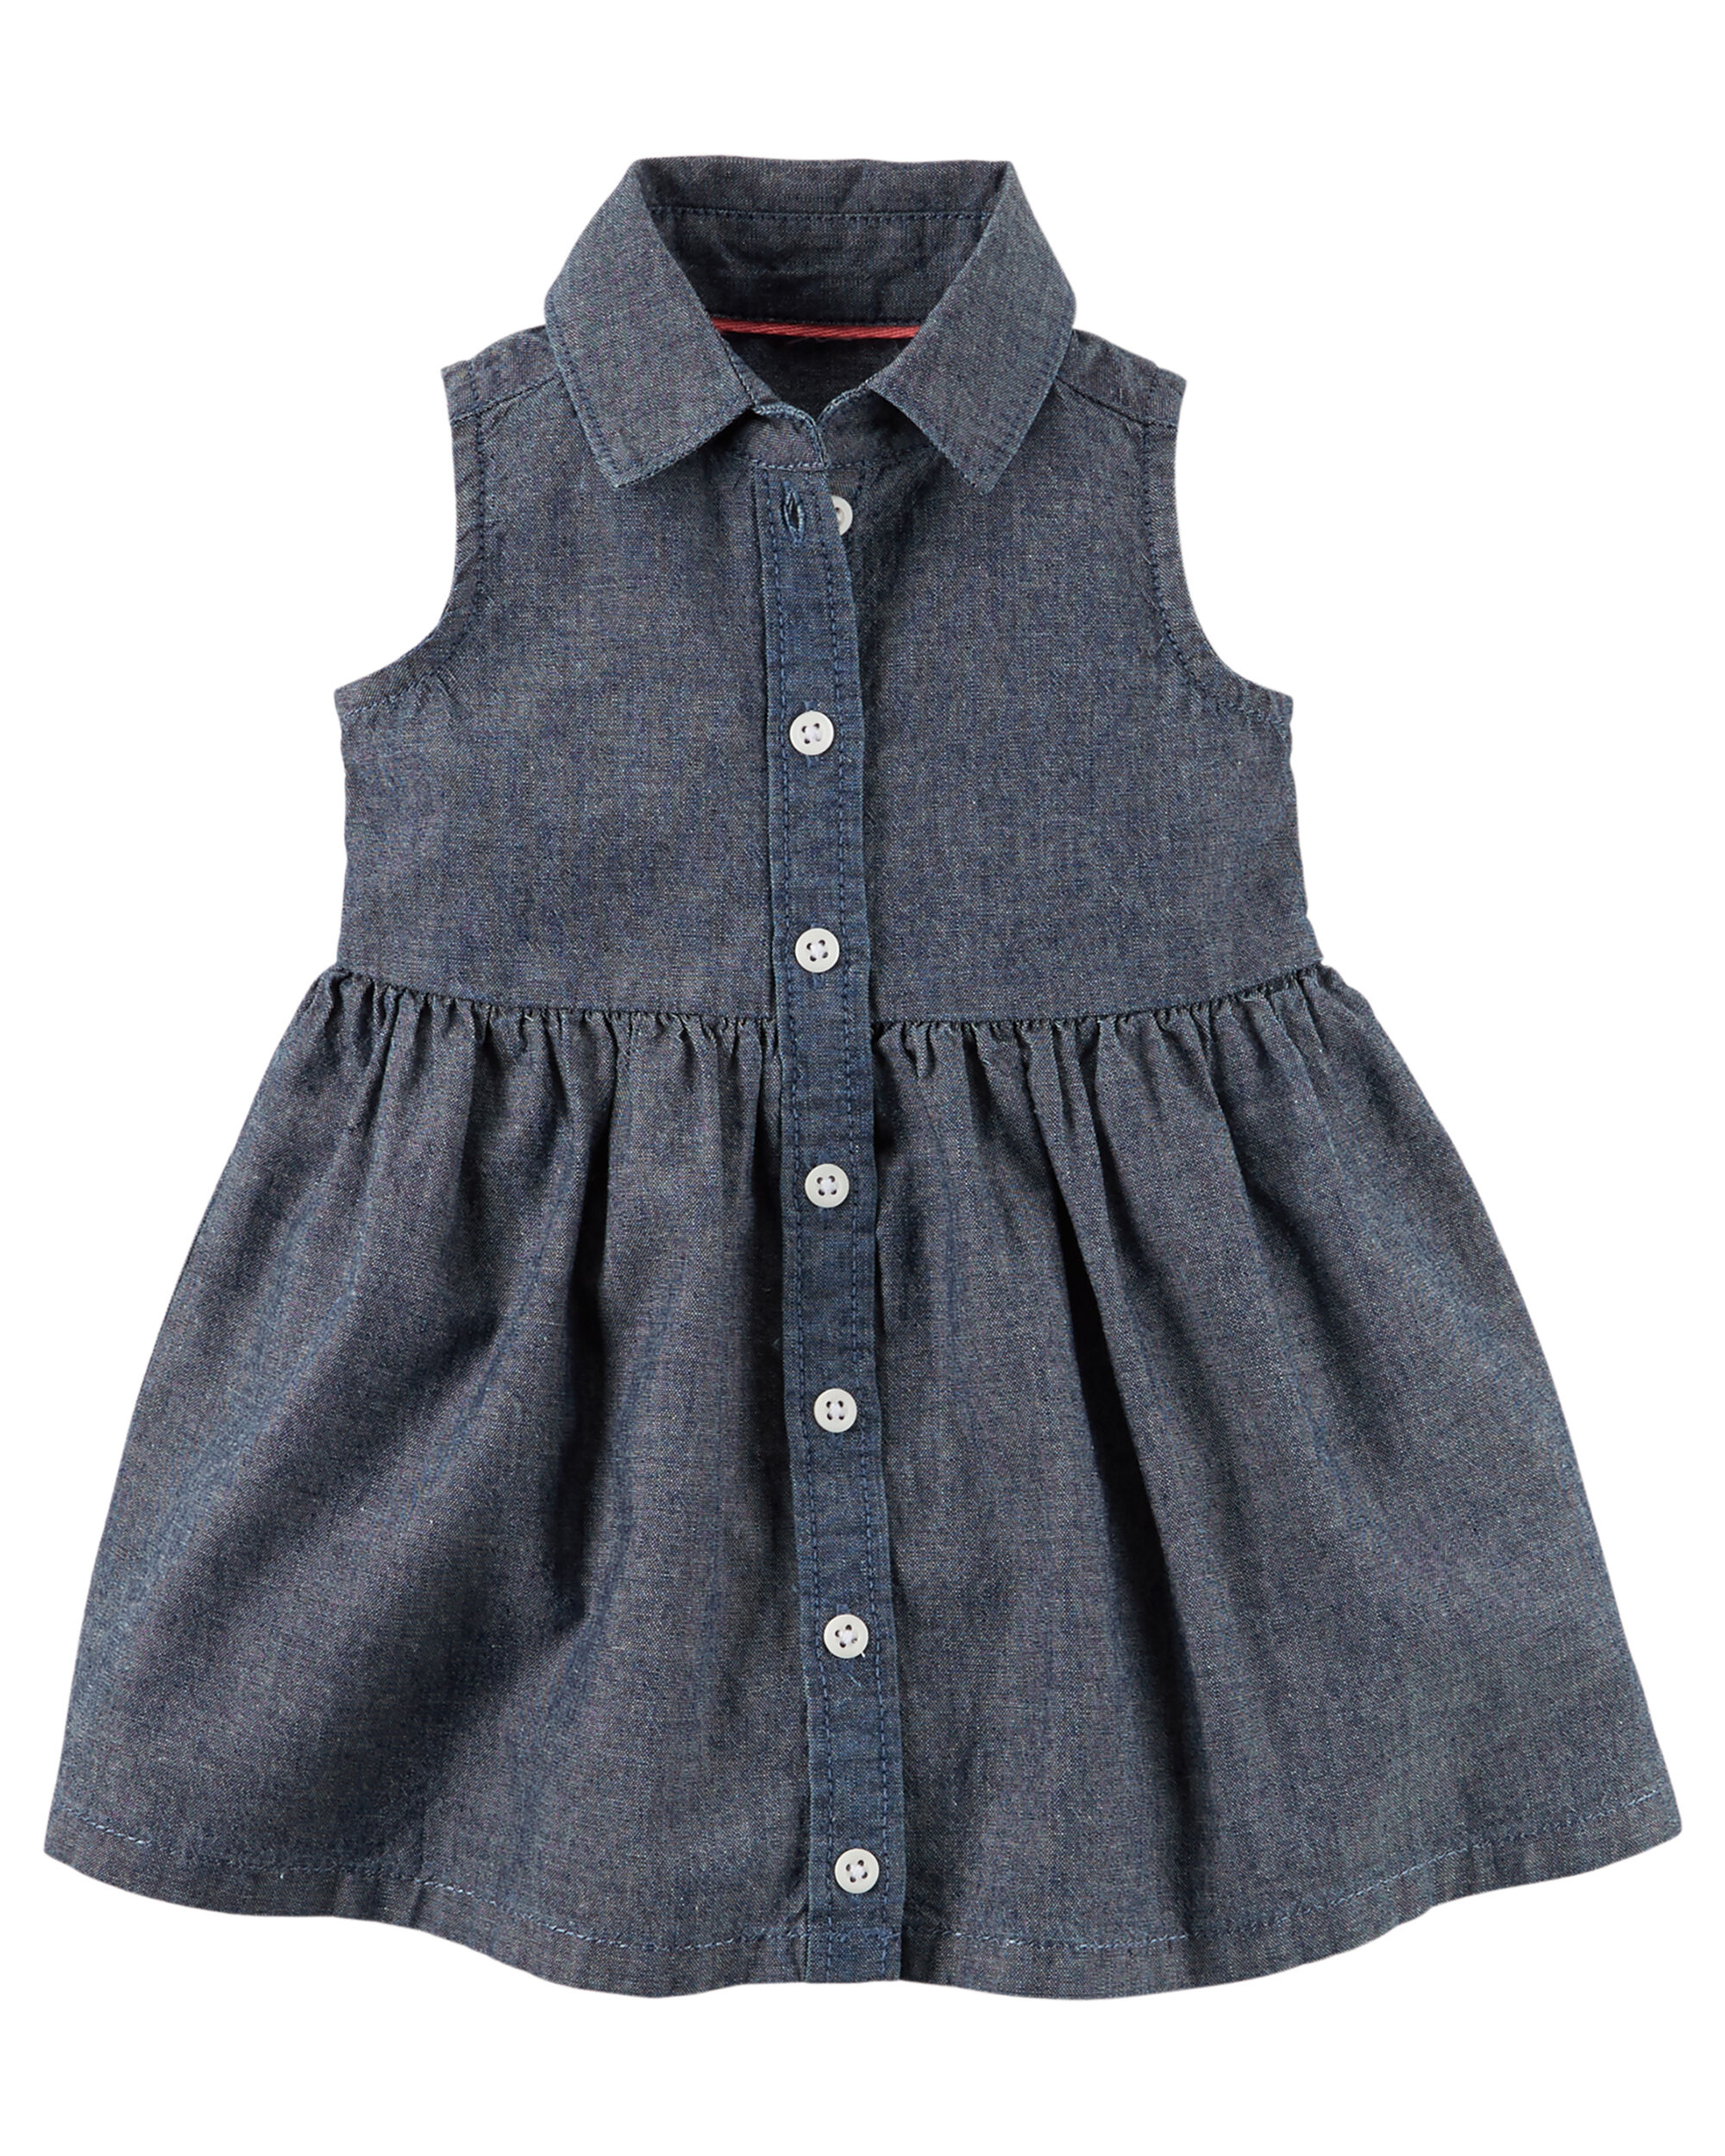 Baby Girl Denim Shirt Dress Newest and Cutest Baby Clothing